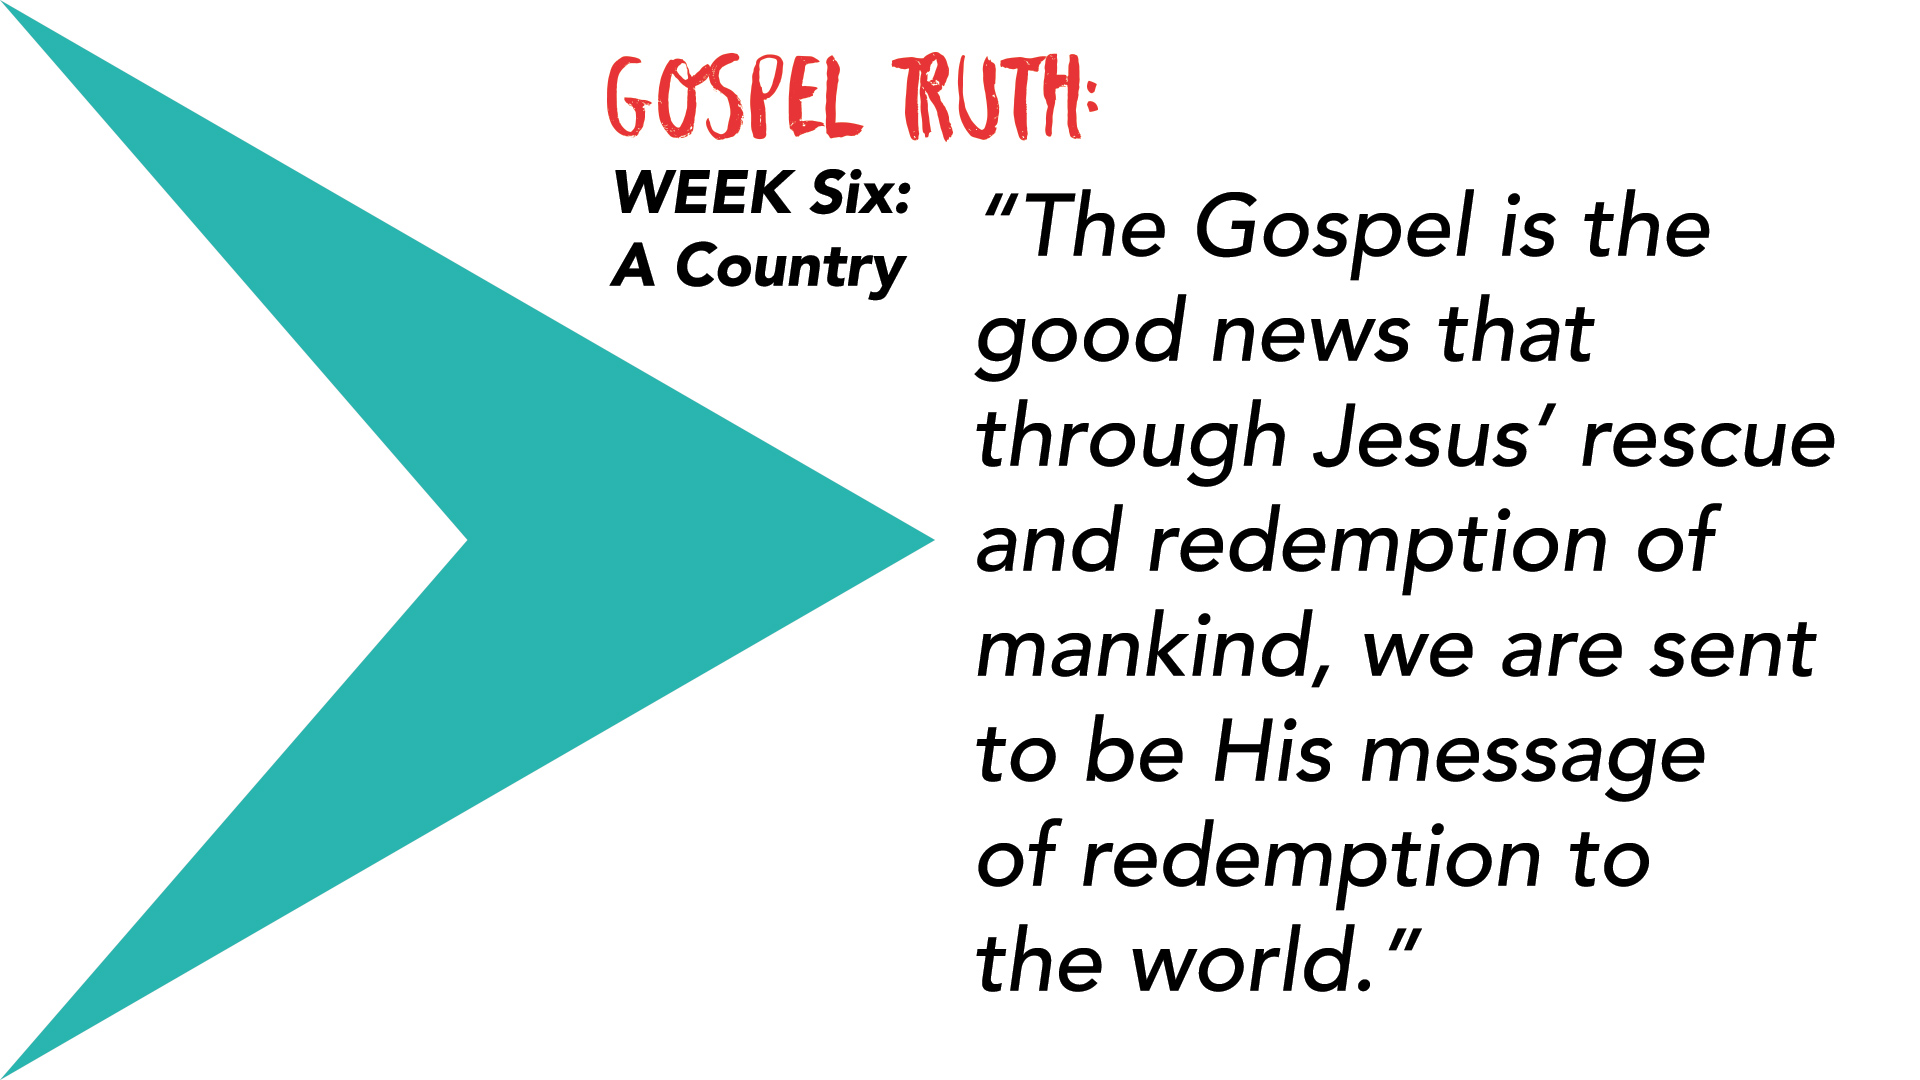 """The Gospel is the good news that through Jesus' rescue and redemption of mankind, we are sent to be His message of redemption to the world."""